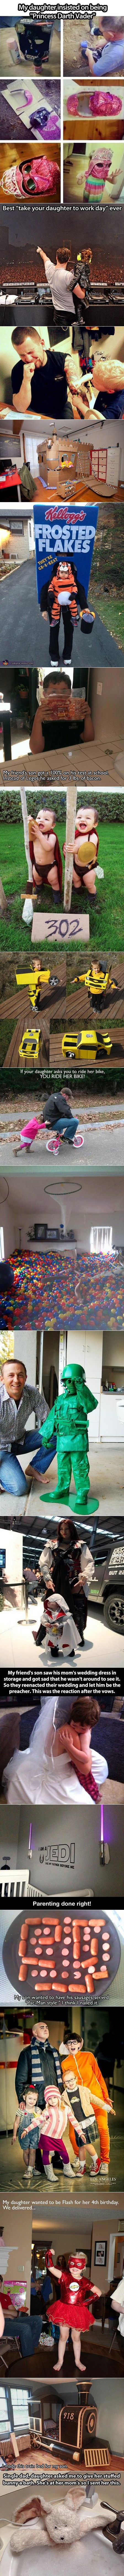 Here are some awesome and geeky parents who are doing it right!